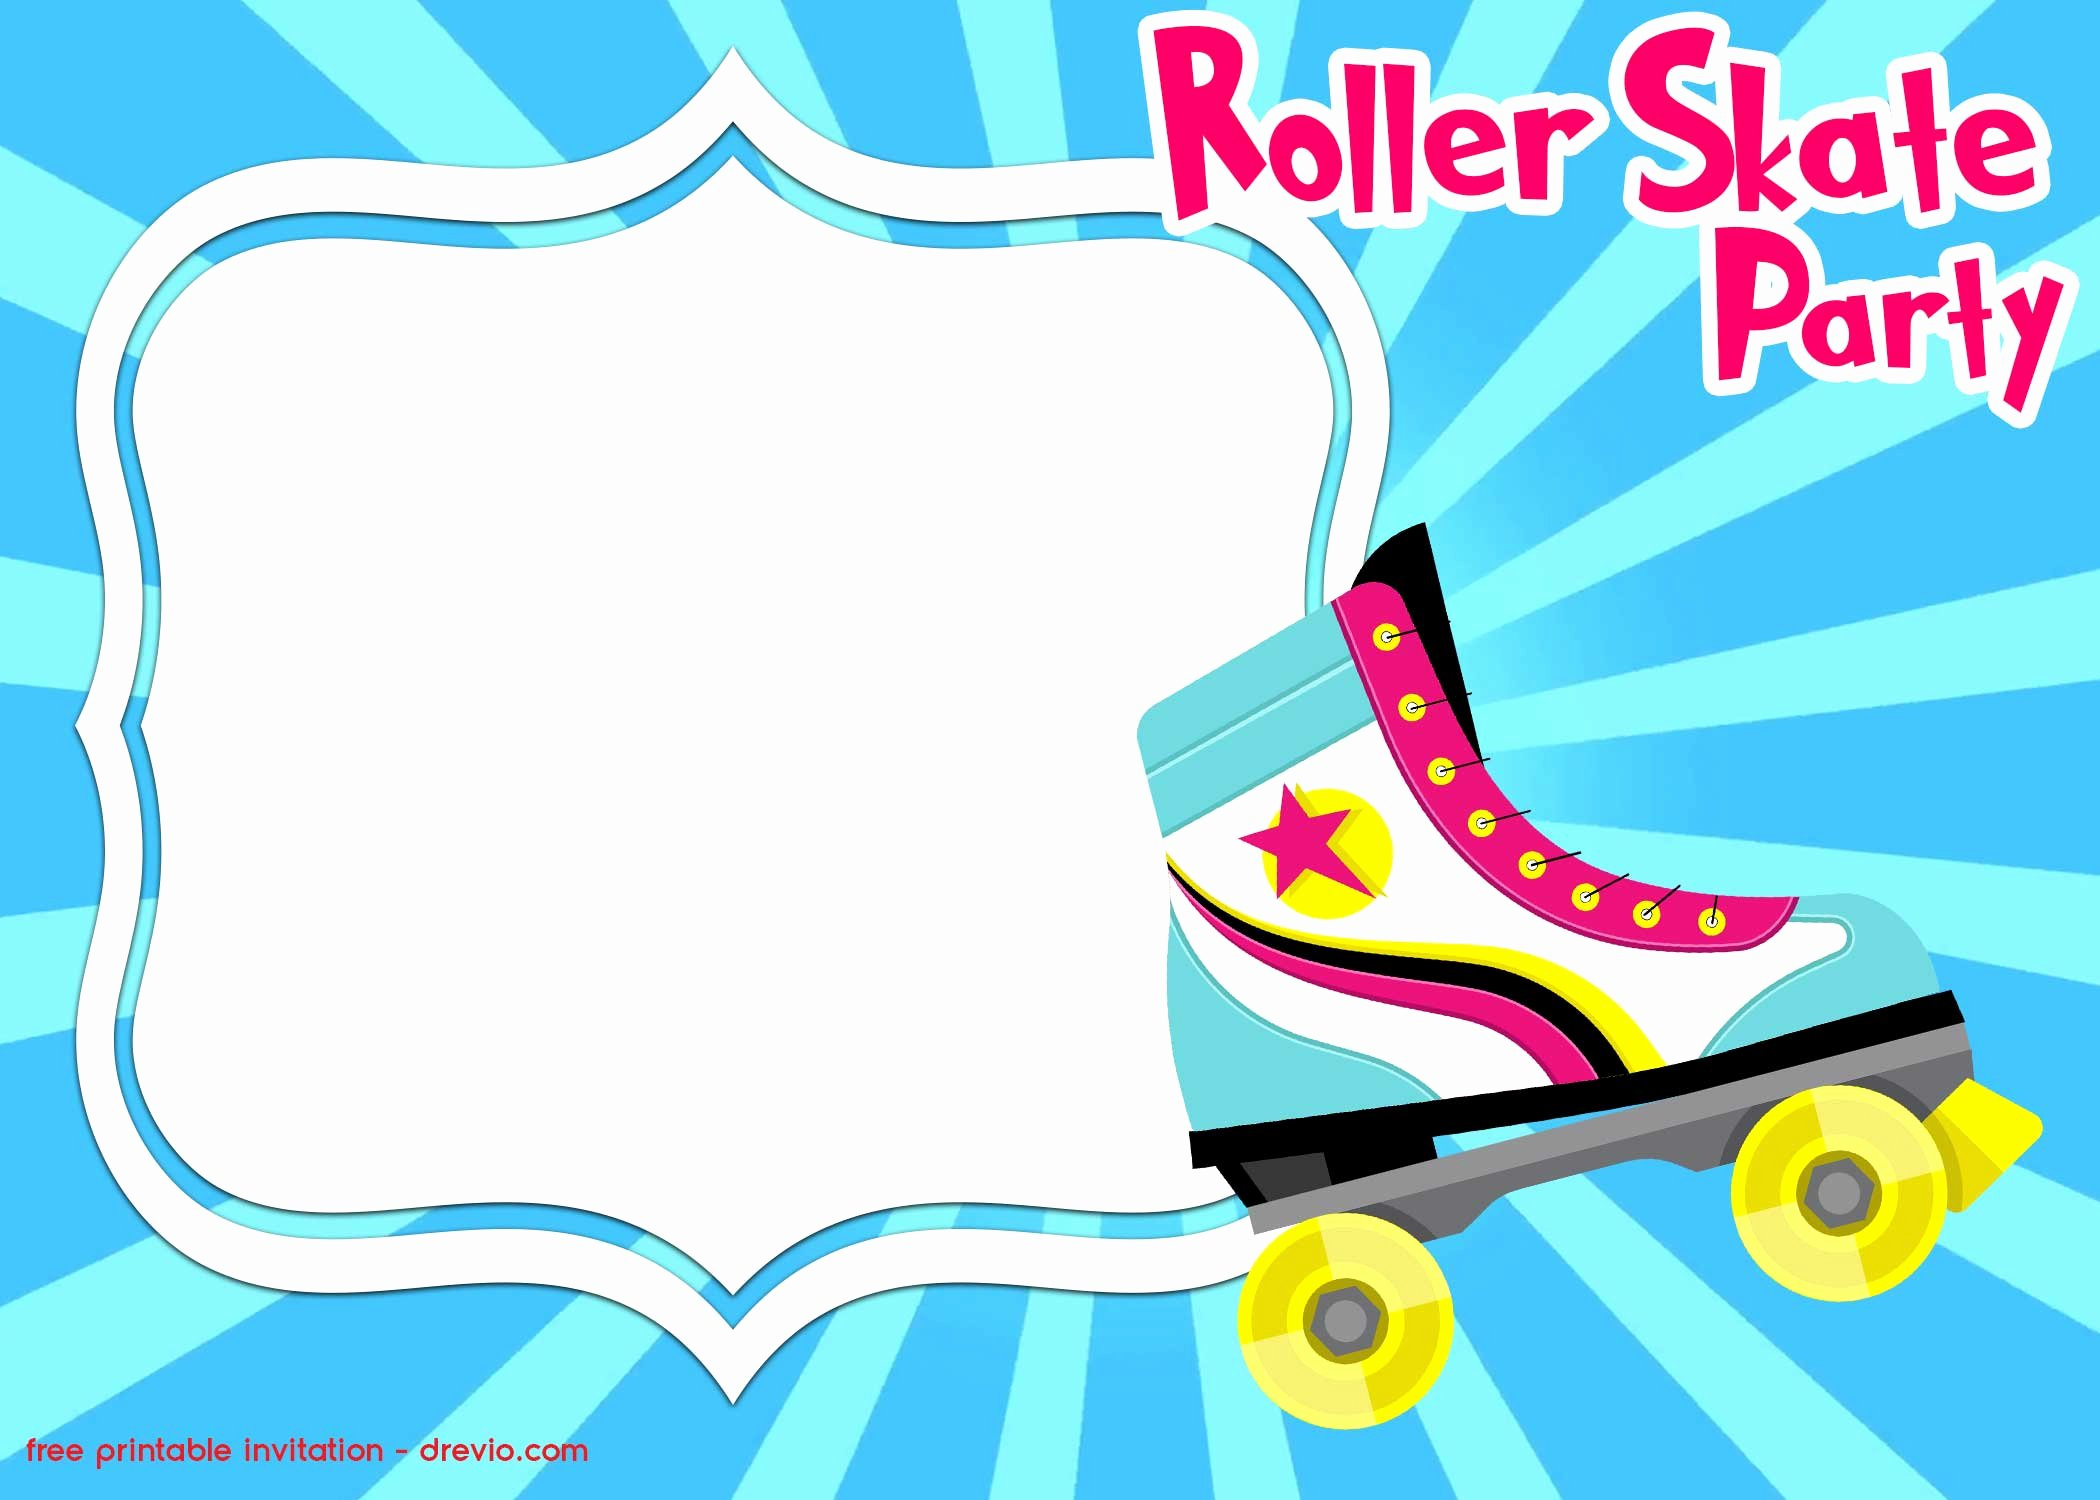 Free Printable Skating Party Invitations Unique Free Roller Skating Invitation Templates – Free Printable